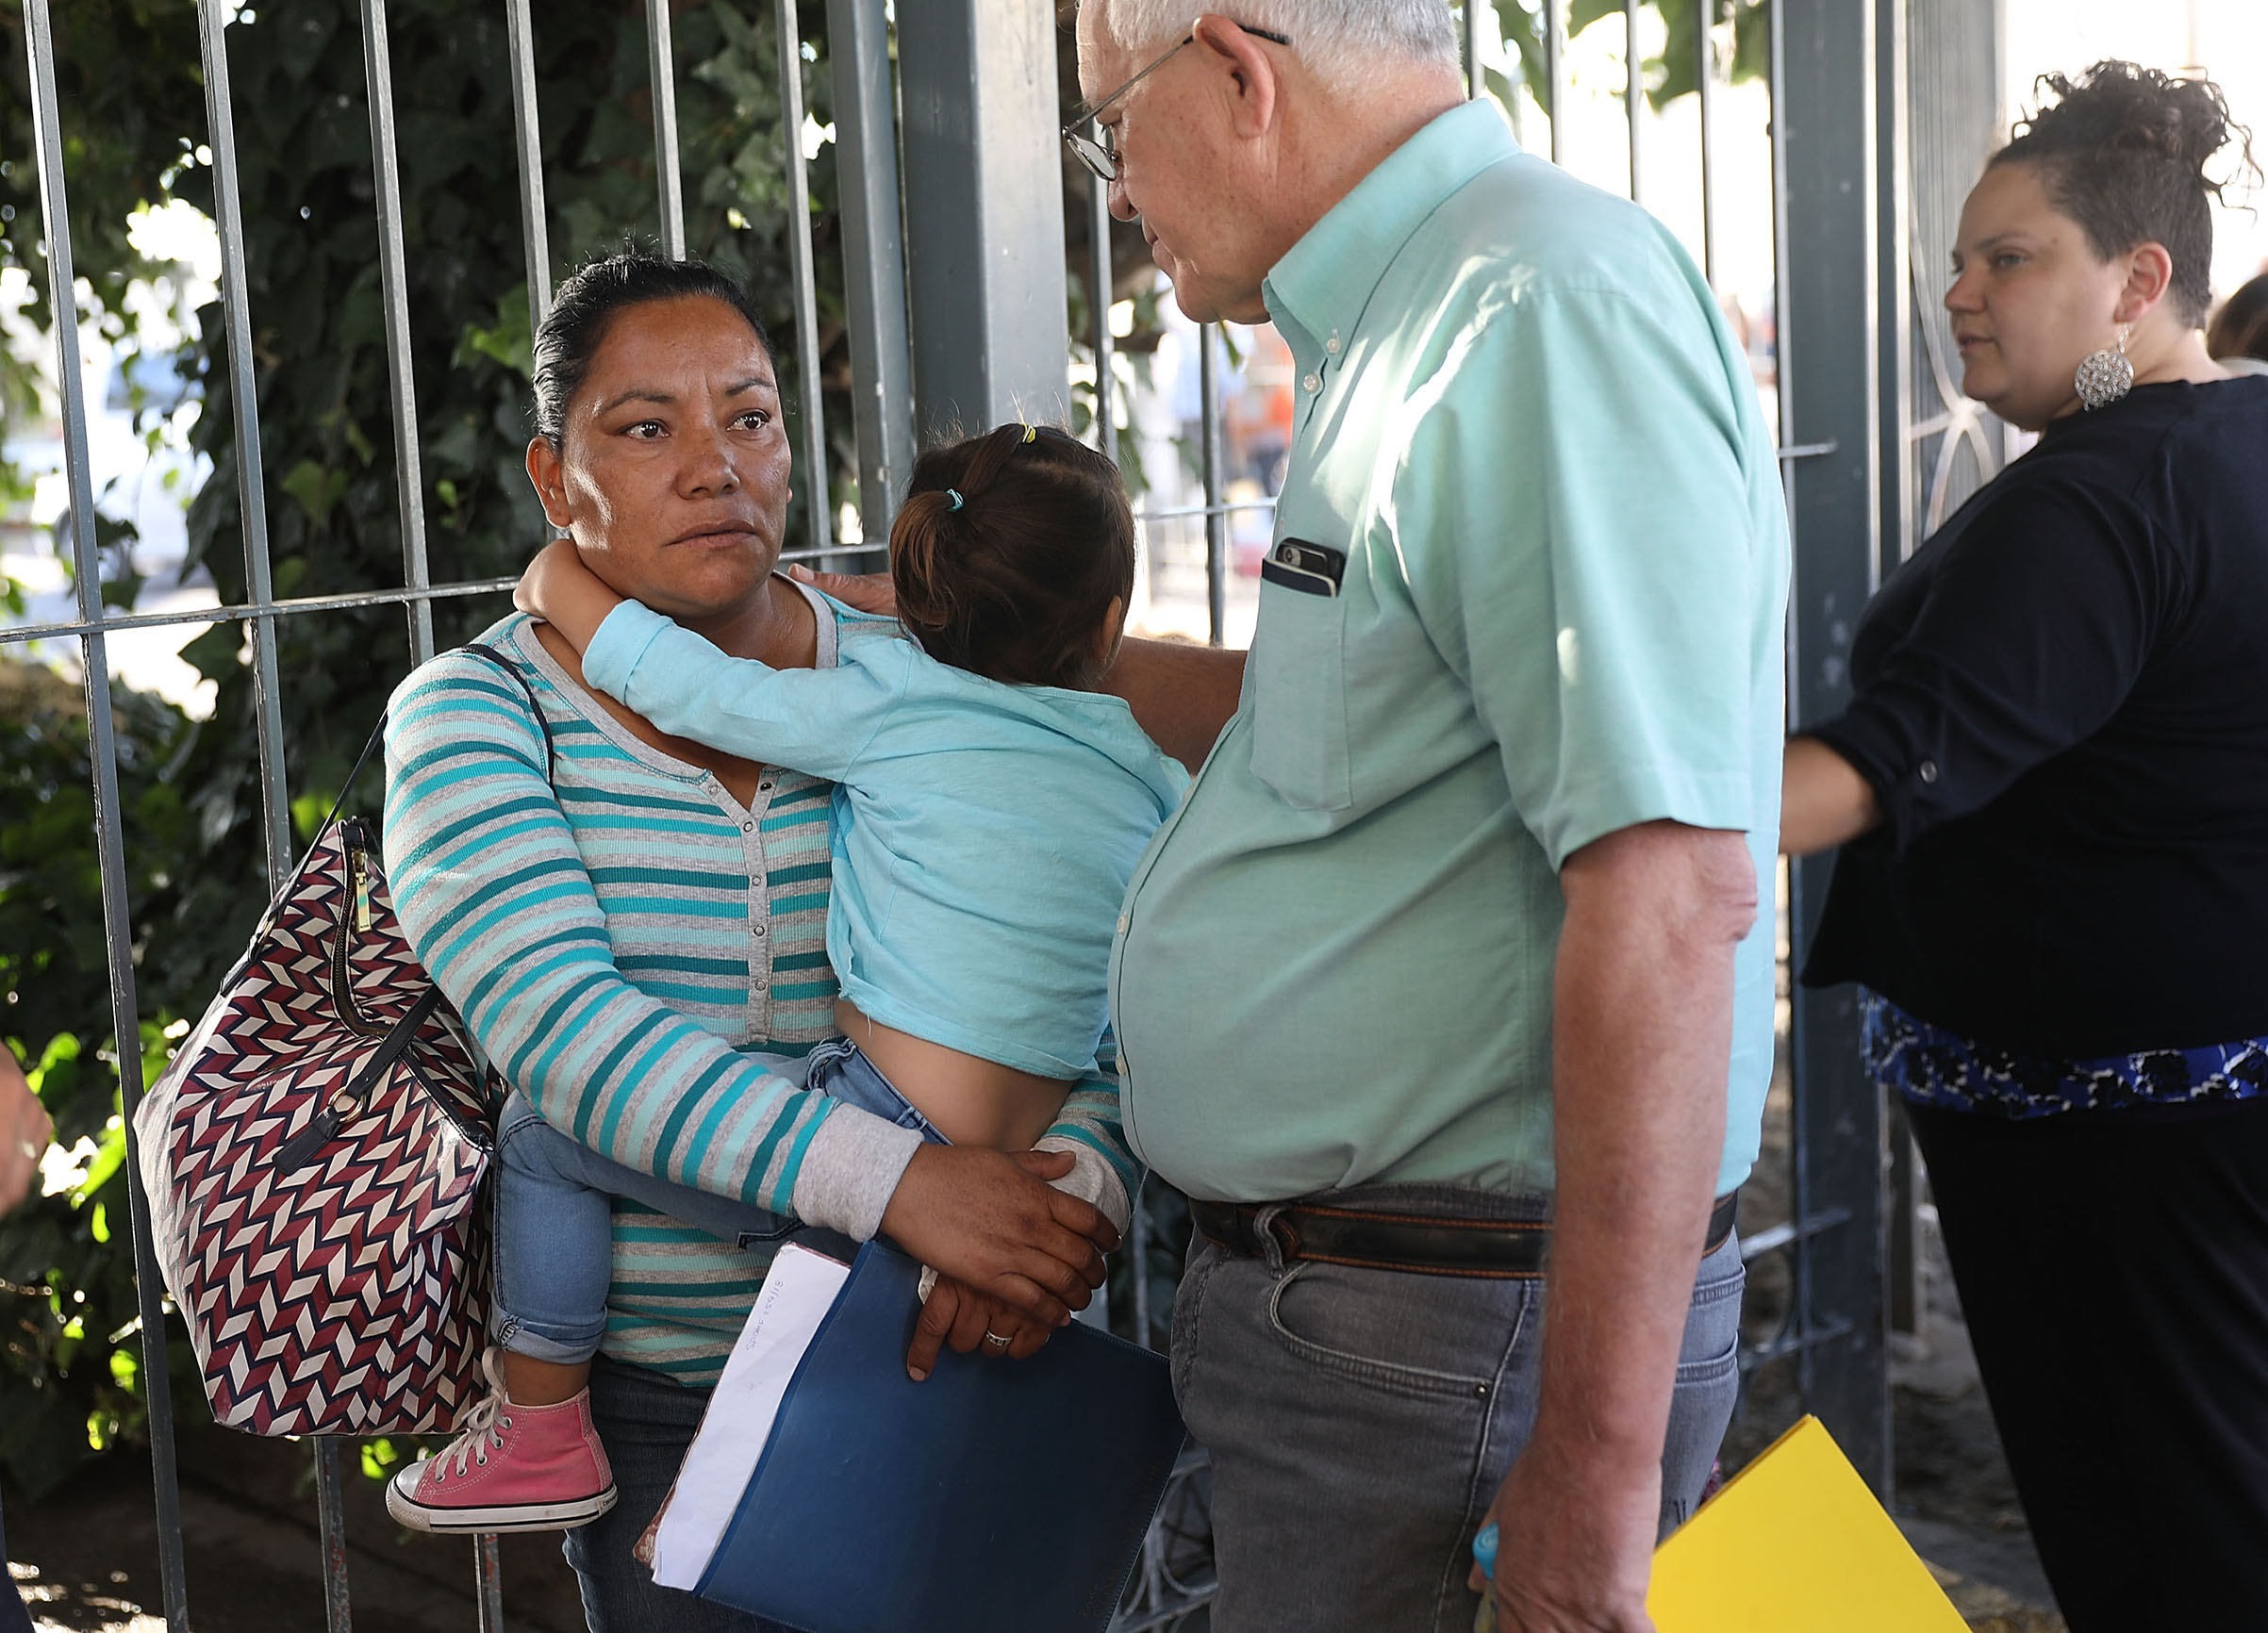 Ruben Garcia, director of the Annunciation House, speaks with Karla (who didn't want her last name used) before he helps her cross the Paso Del Norte Port of Entry to ask for asylum for herself and her grandchild in the United States on June 20, 2018 in Ciudad Juarez, Mexico. The Trump Administration's controversial zero tolerance immigration policy has led to an increase in the number of migrant children who have been separated from their families at the southern U.S. border. U.S. Attorney General Jeff Sessions has added that domestic and gang violence in immigrants' country of origin would no longer qualify them for political asylum status.